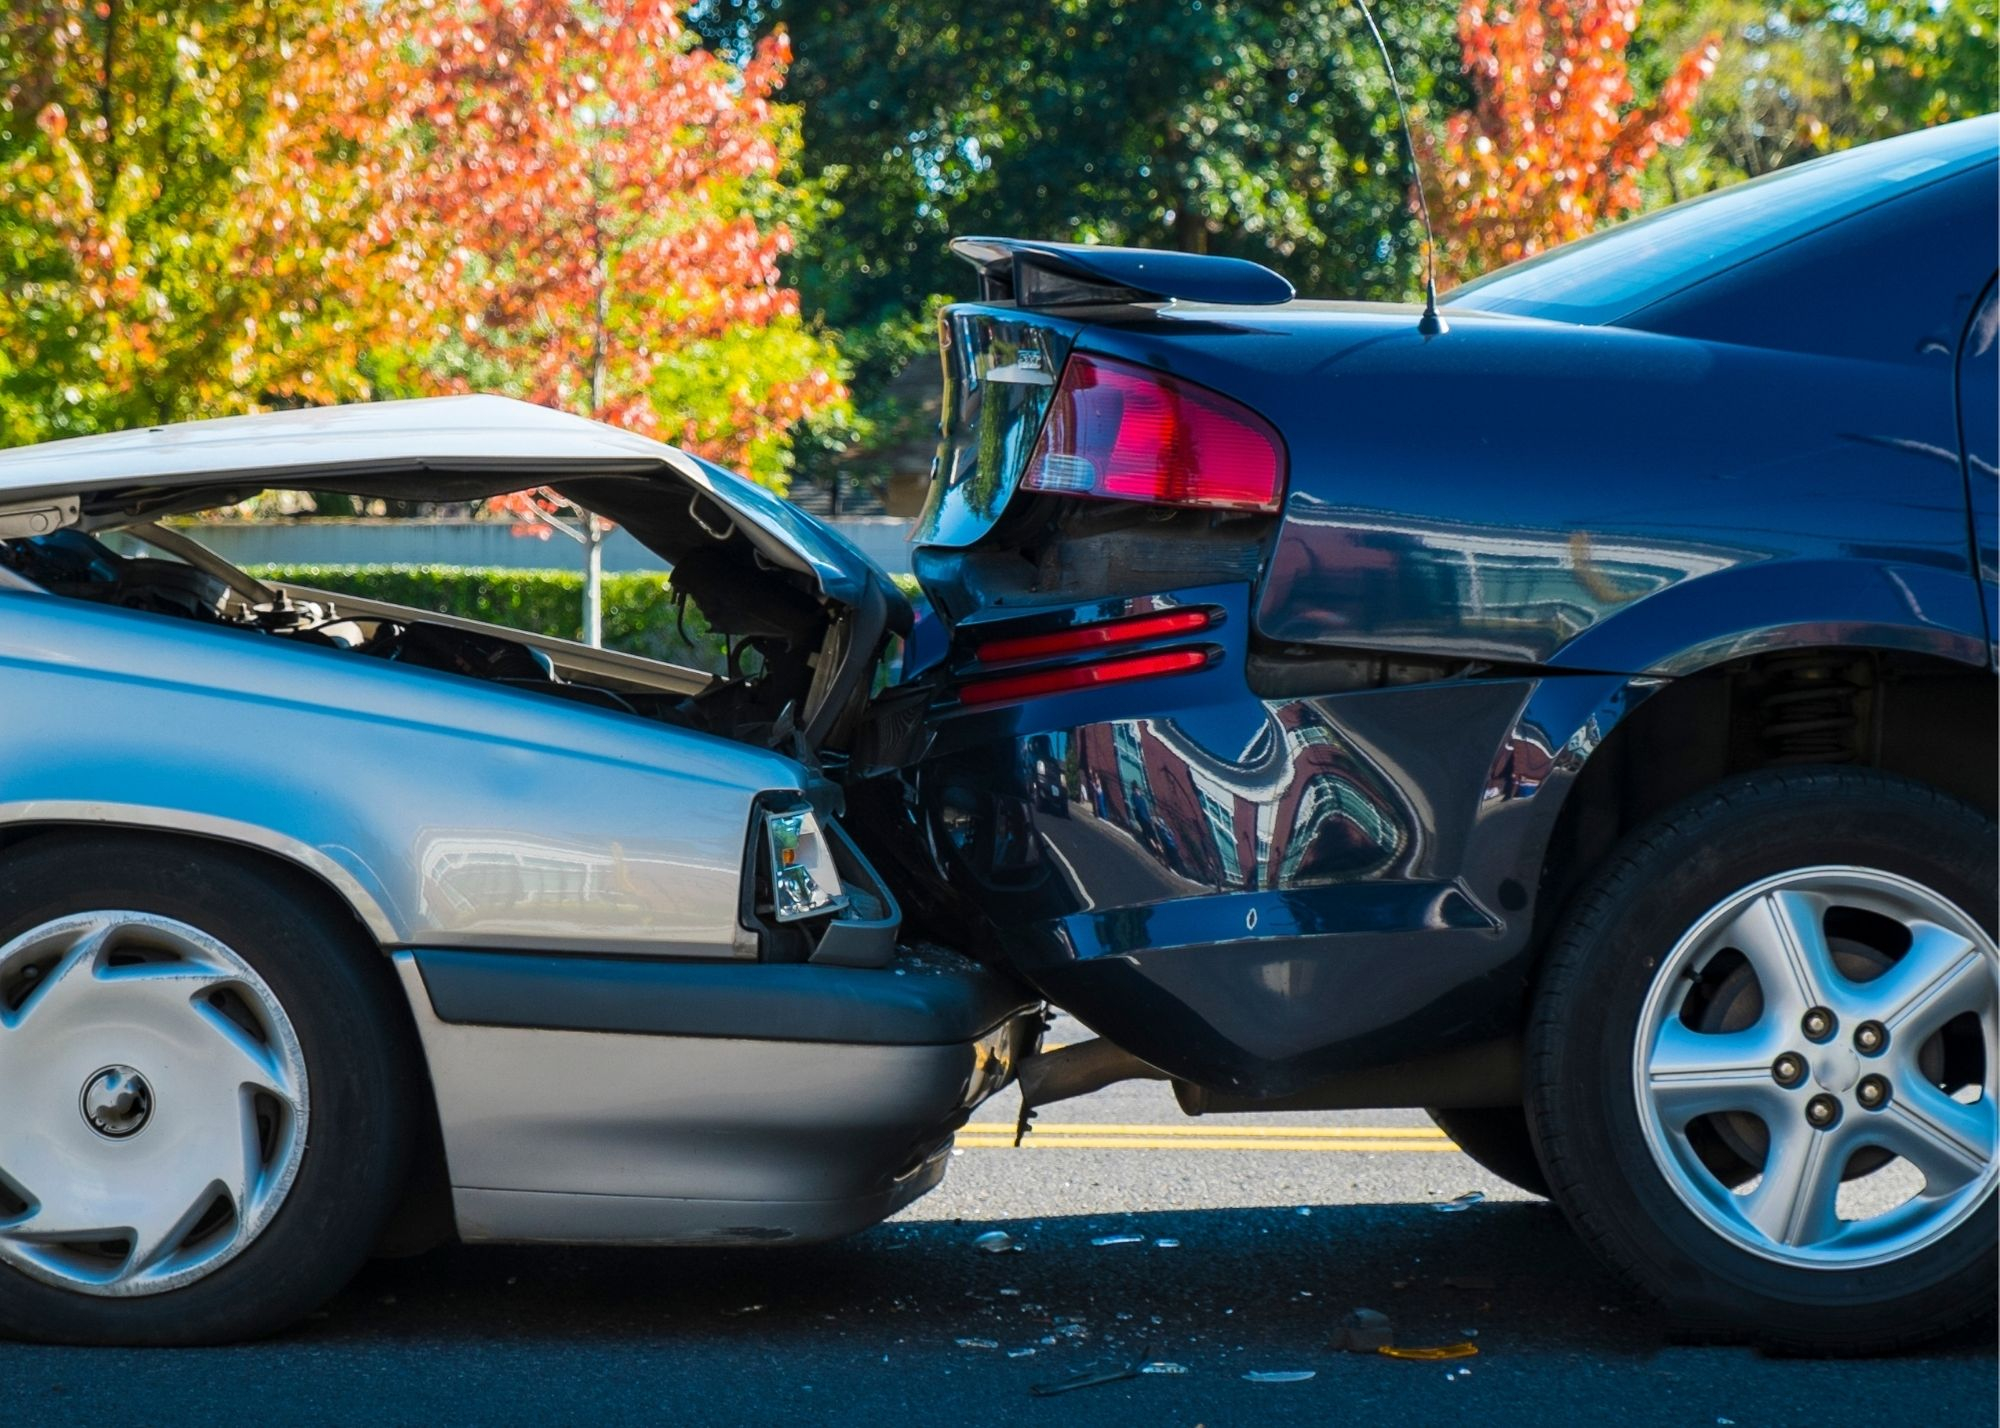 how do you know if you have to have sr22 insurance in Colorado